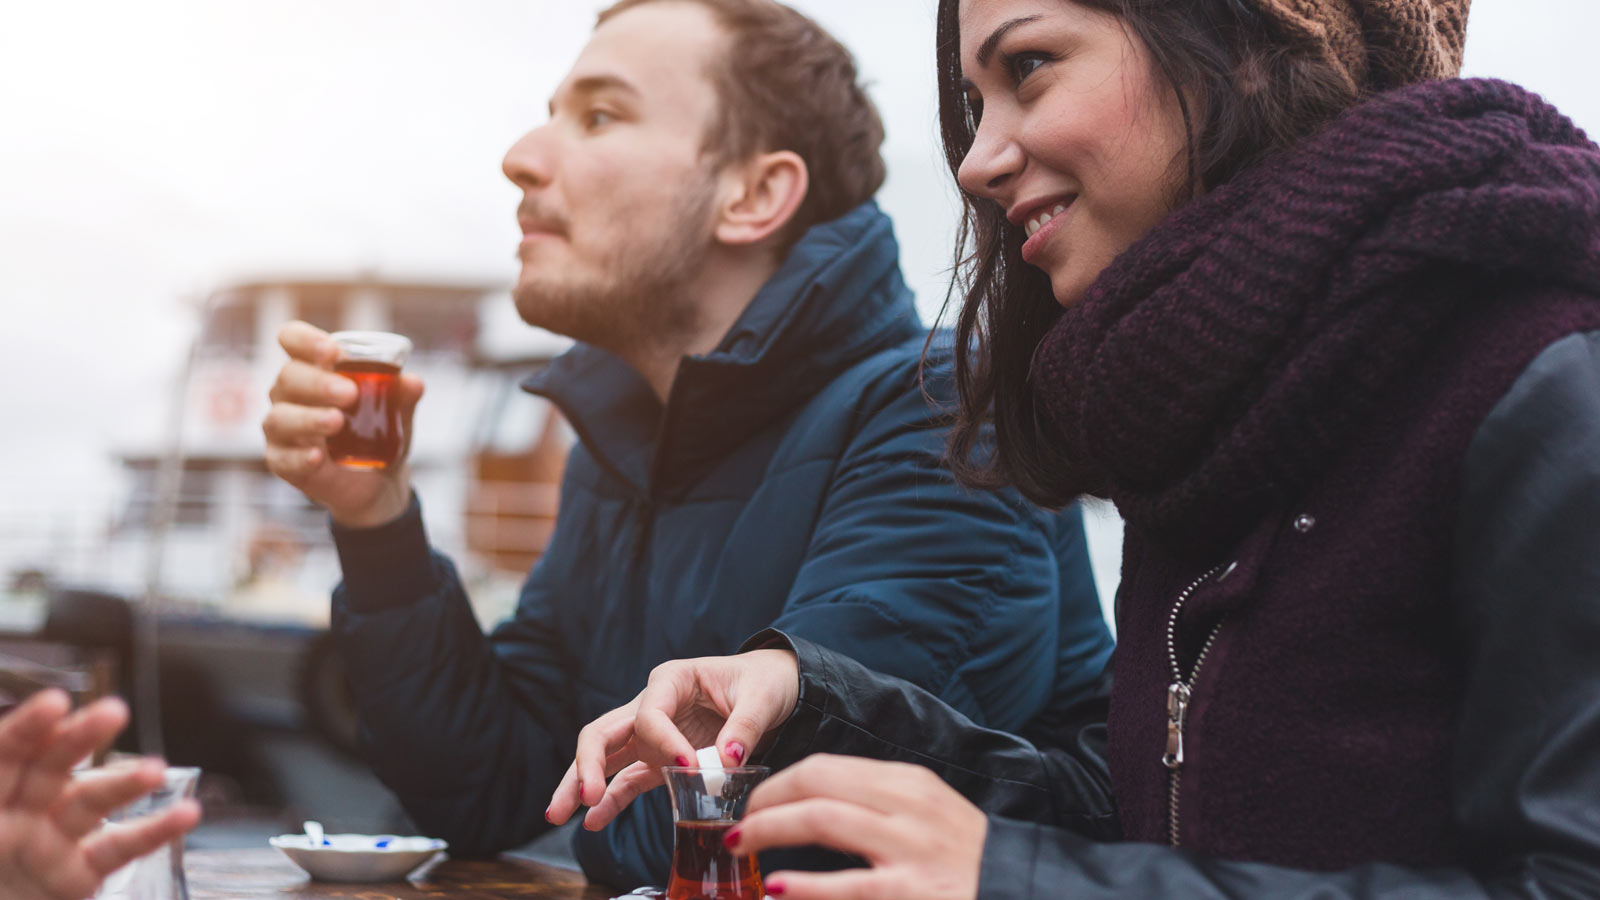 A boy and a girl sitting at a table outside drinking a glass of hard liquor